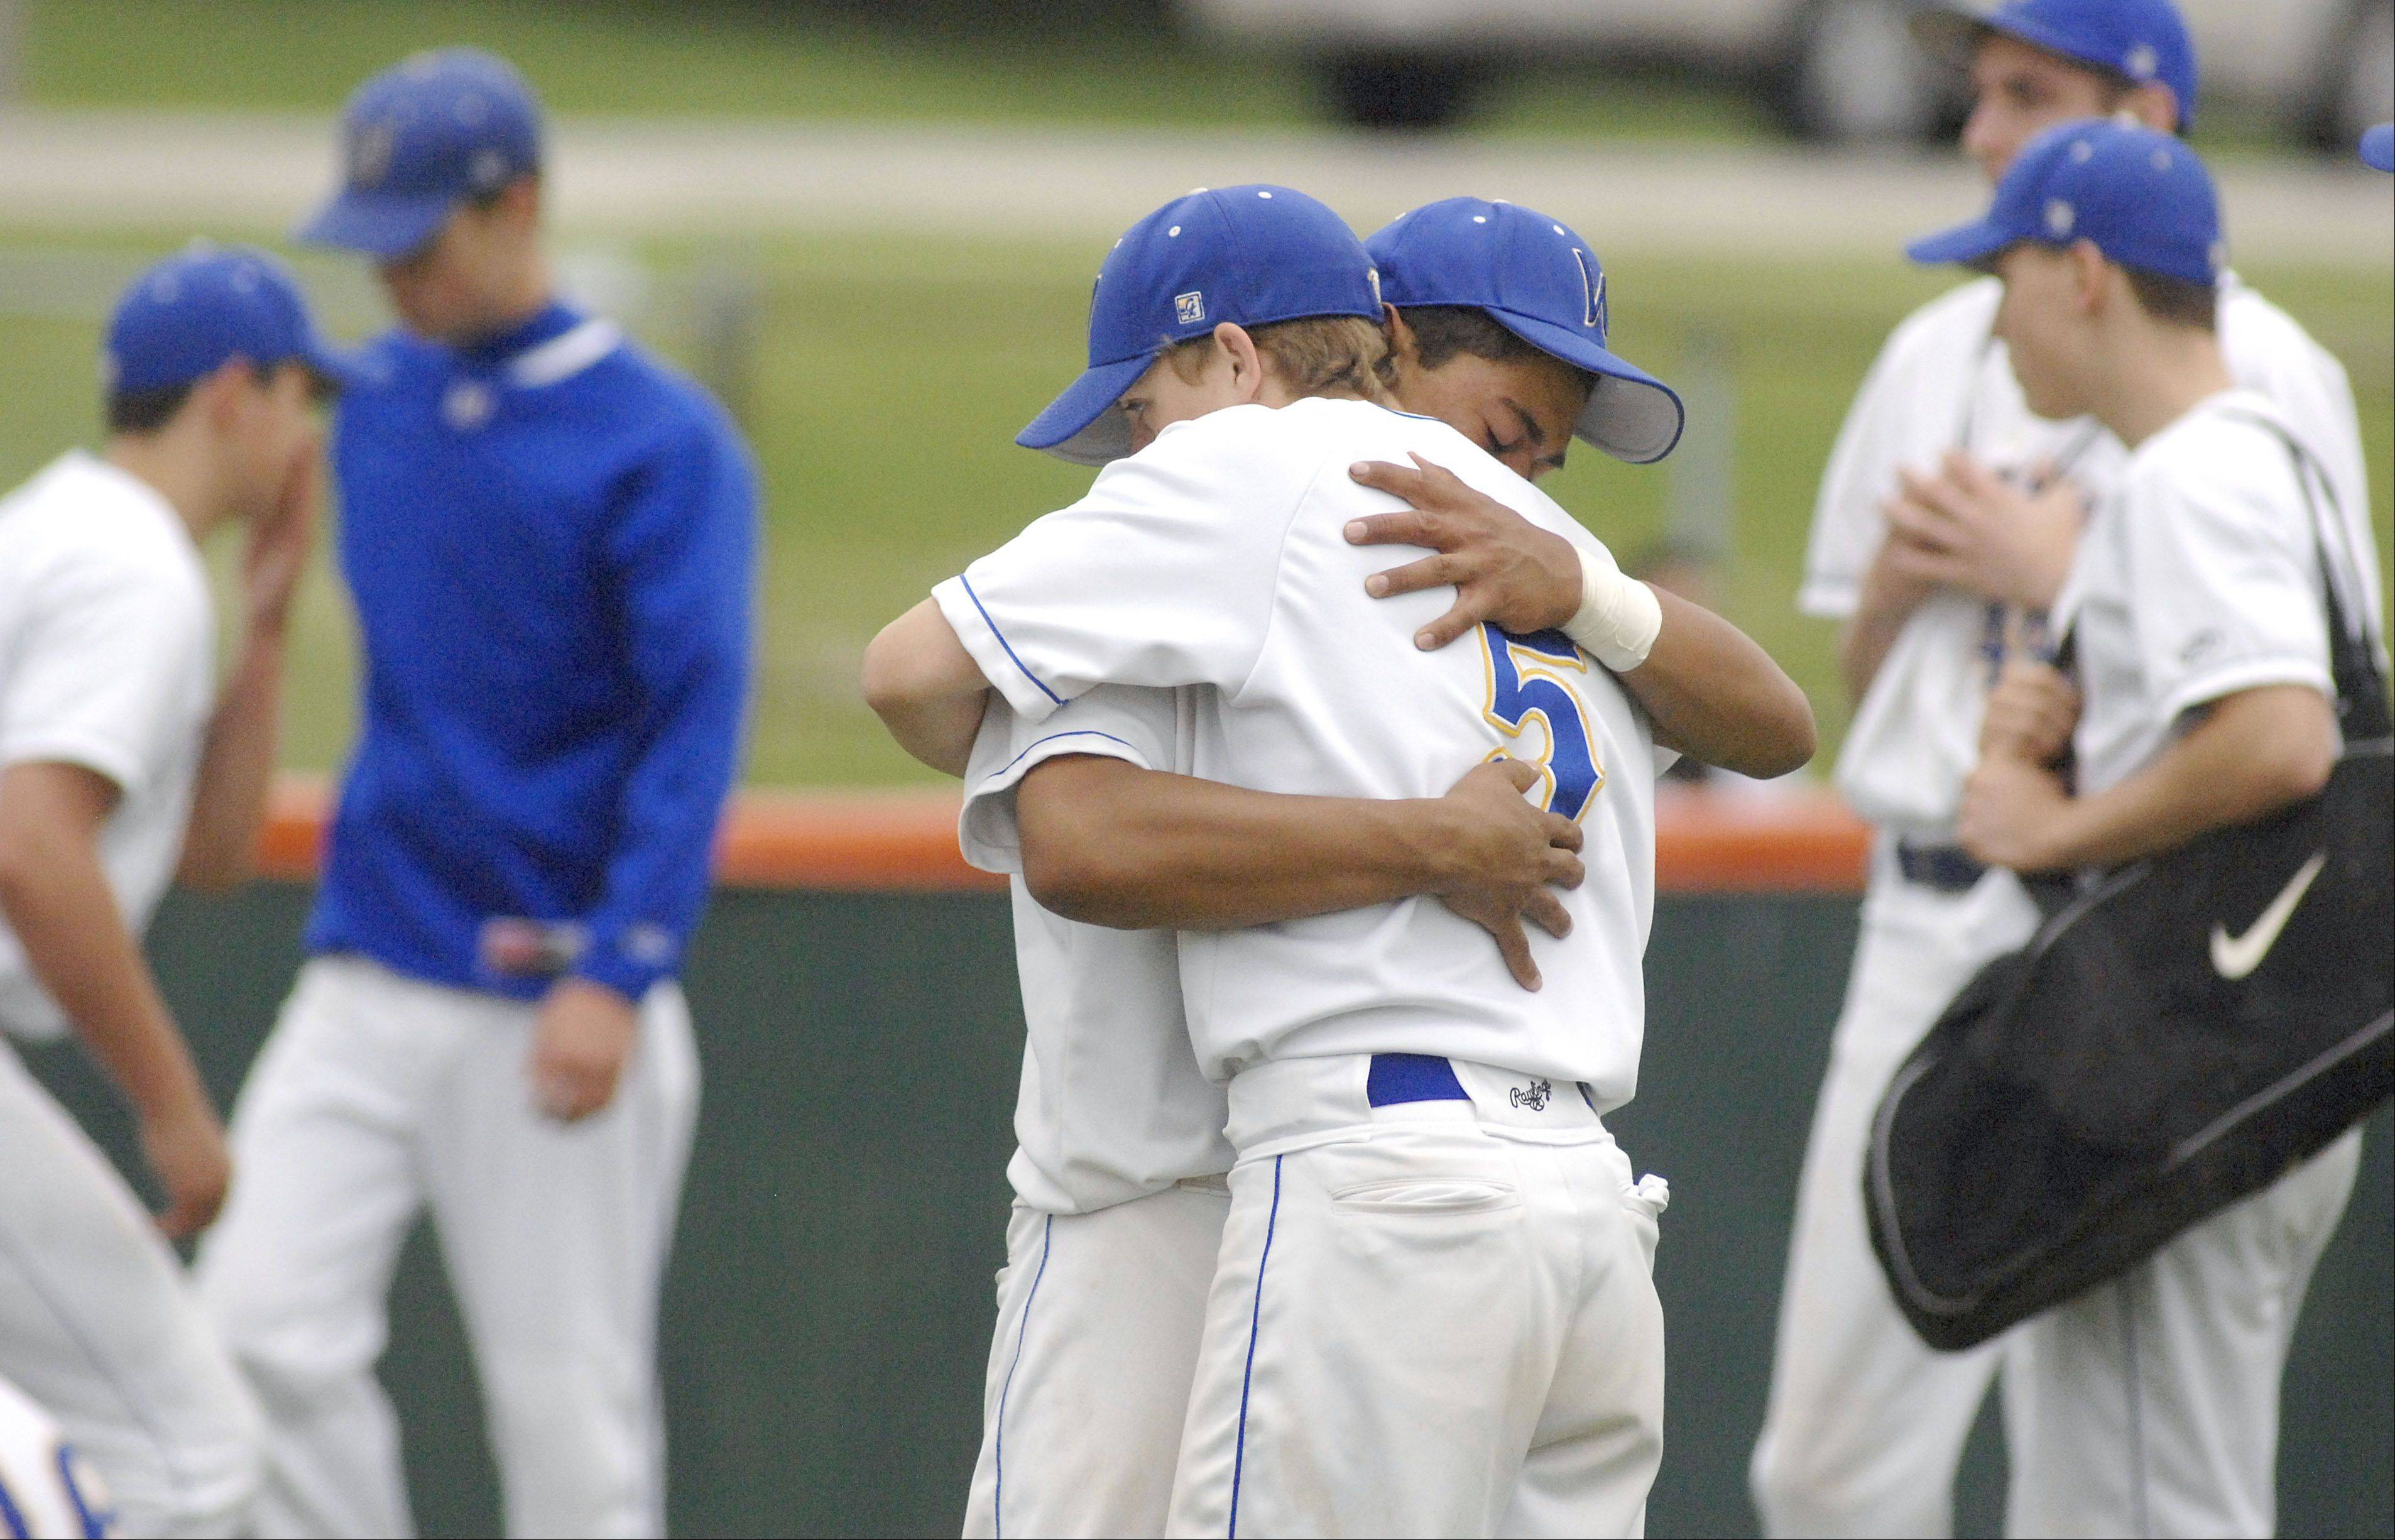 Wheaton North's Jeff Harper, facing, gives a consoling hug to teammate and senior Cody Gregory after their Class 4A sectional championship loss to St. Charles East on Saturday, June 1.